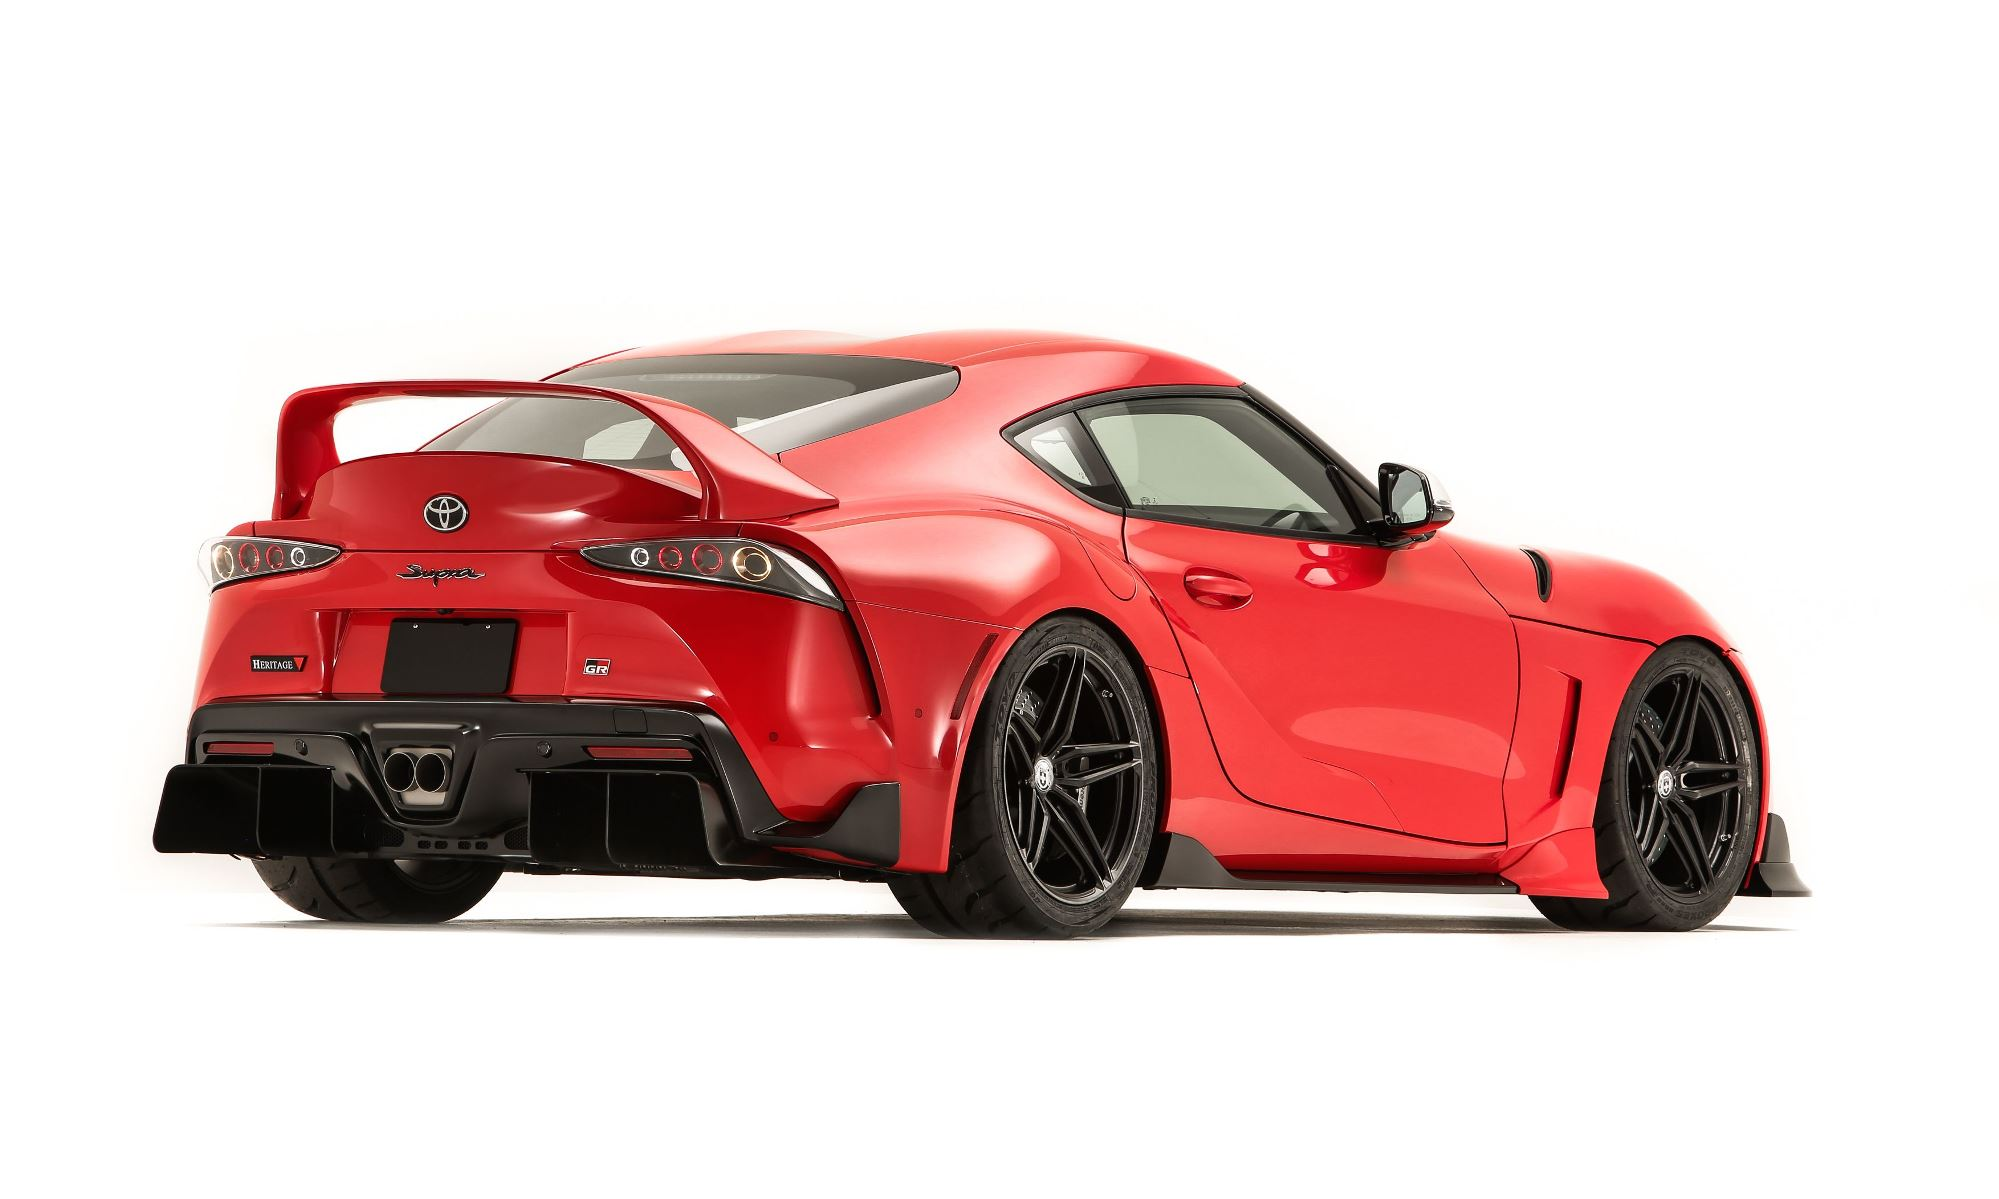 Toyota GR Supra Heritage Edition rear